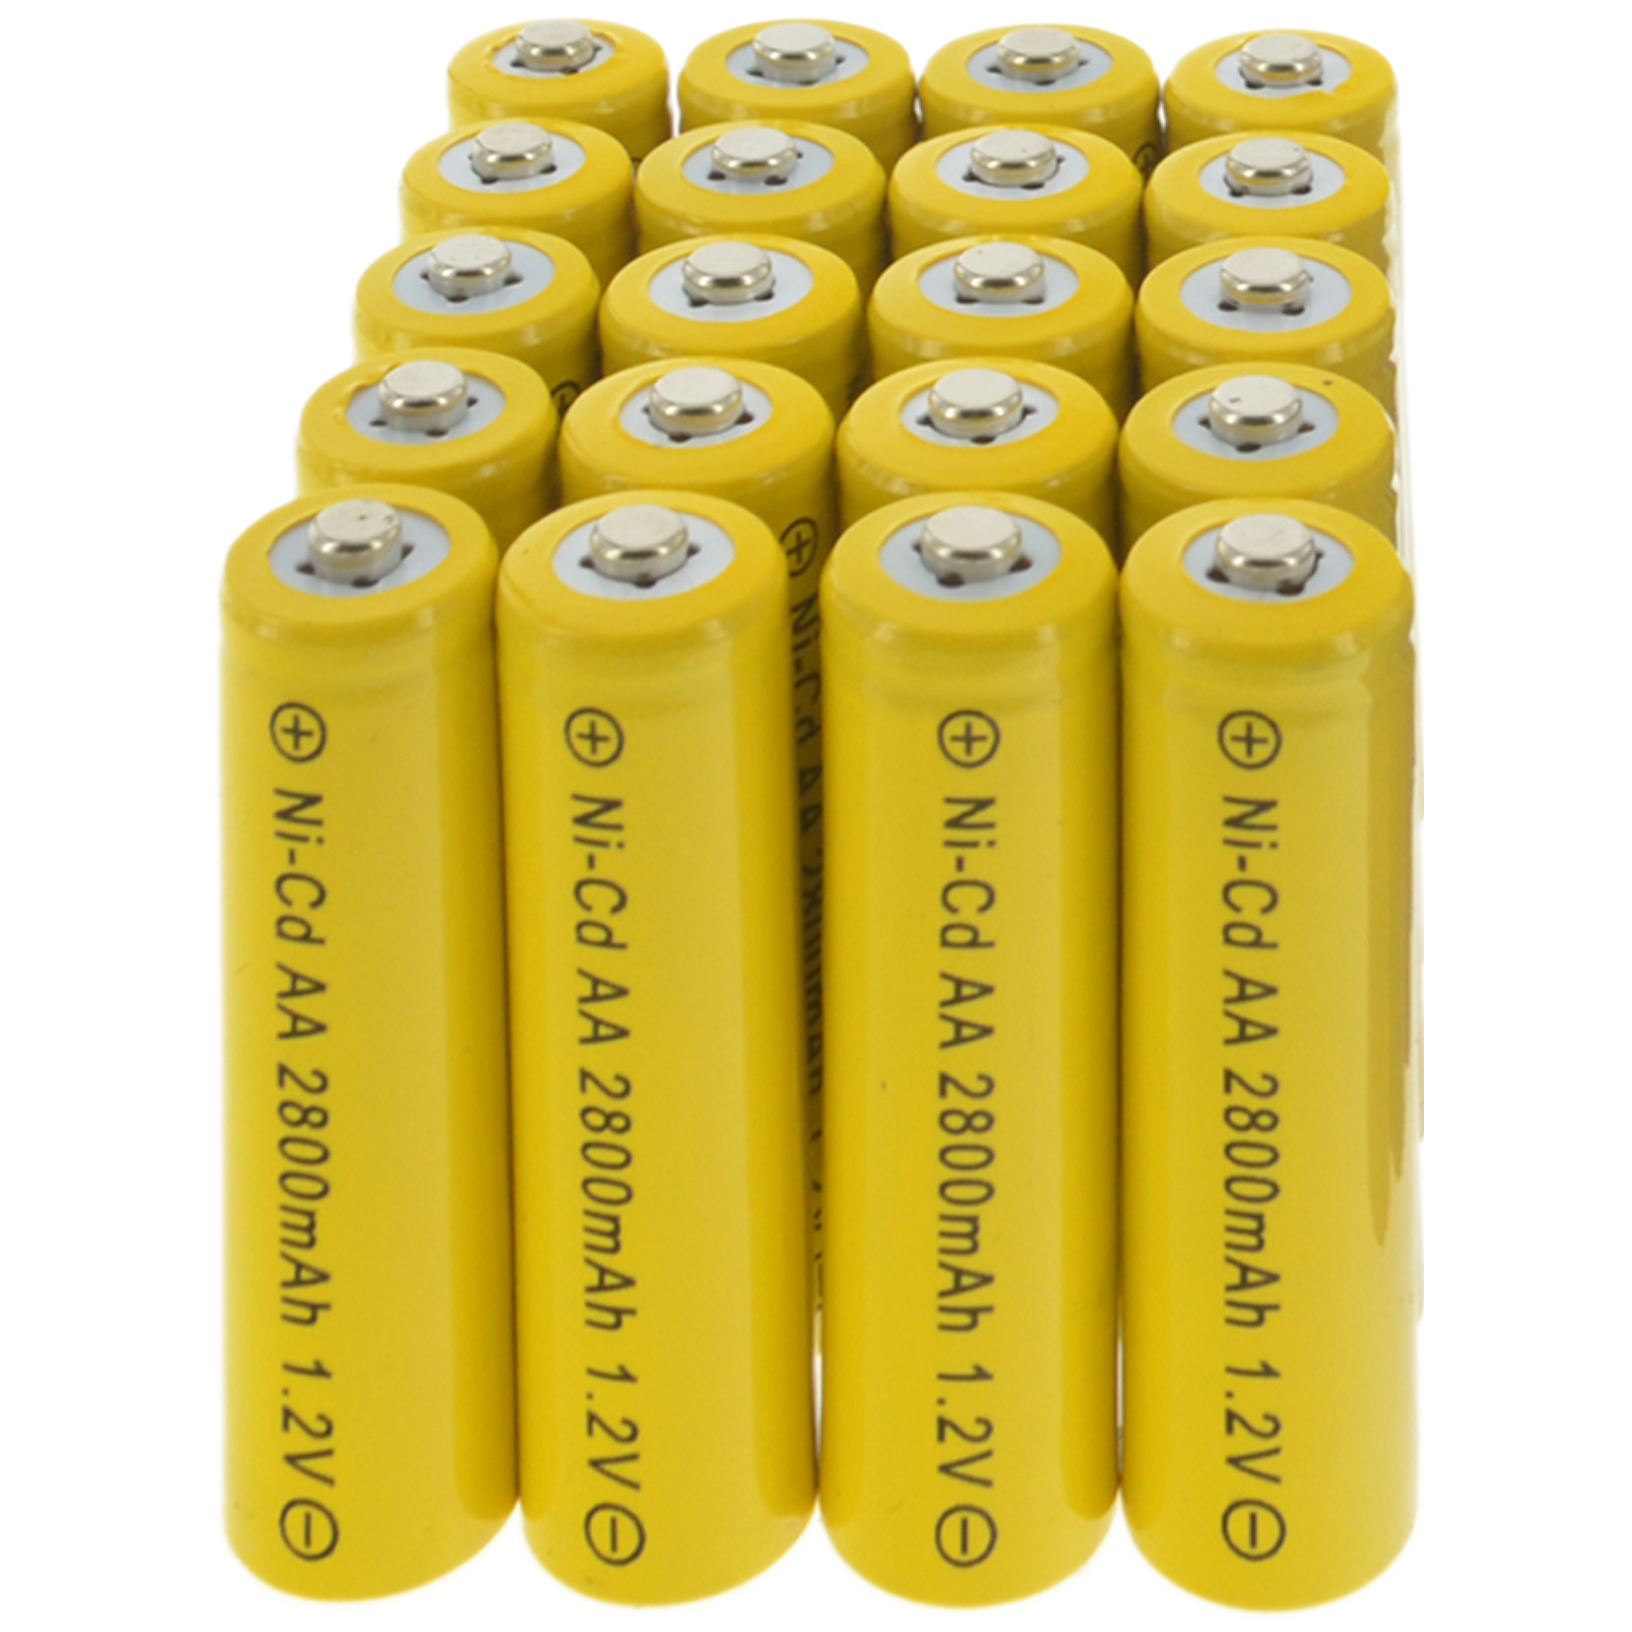 20x Aa Rechargeable Batteries Nicd 2800mah 12v Garden Solar Ni Cd Batre Cas Energizer Recharge Maxi A2 Does Not Apply